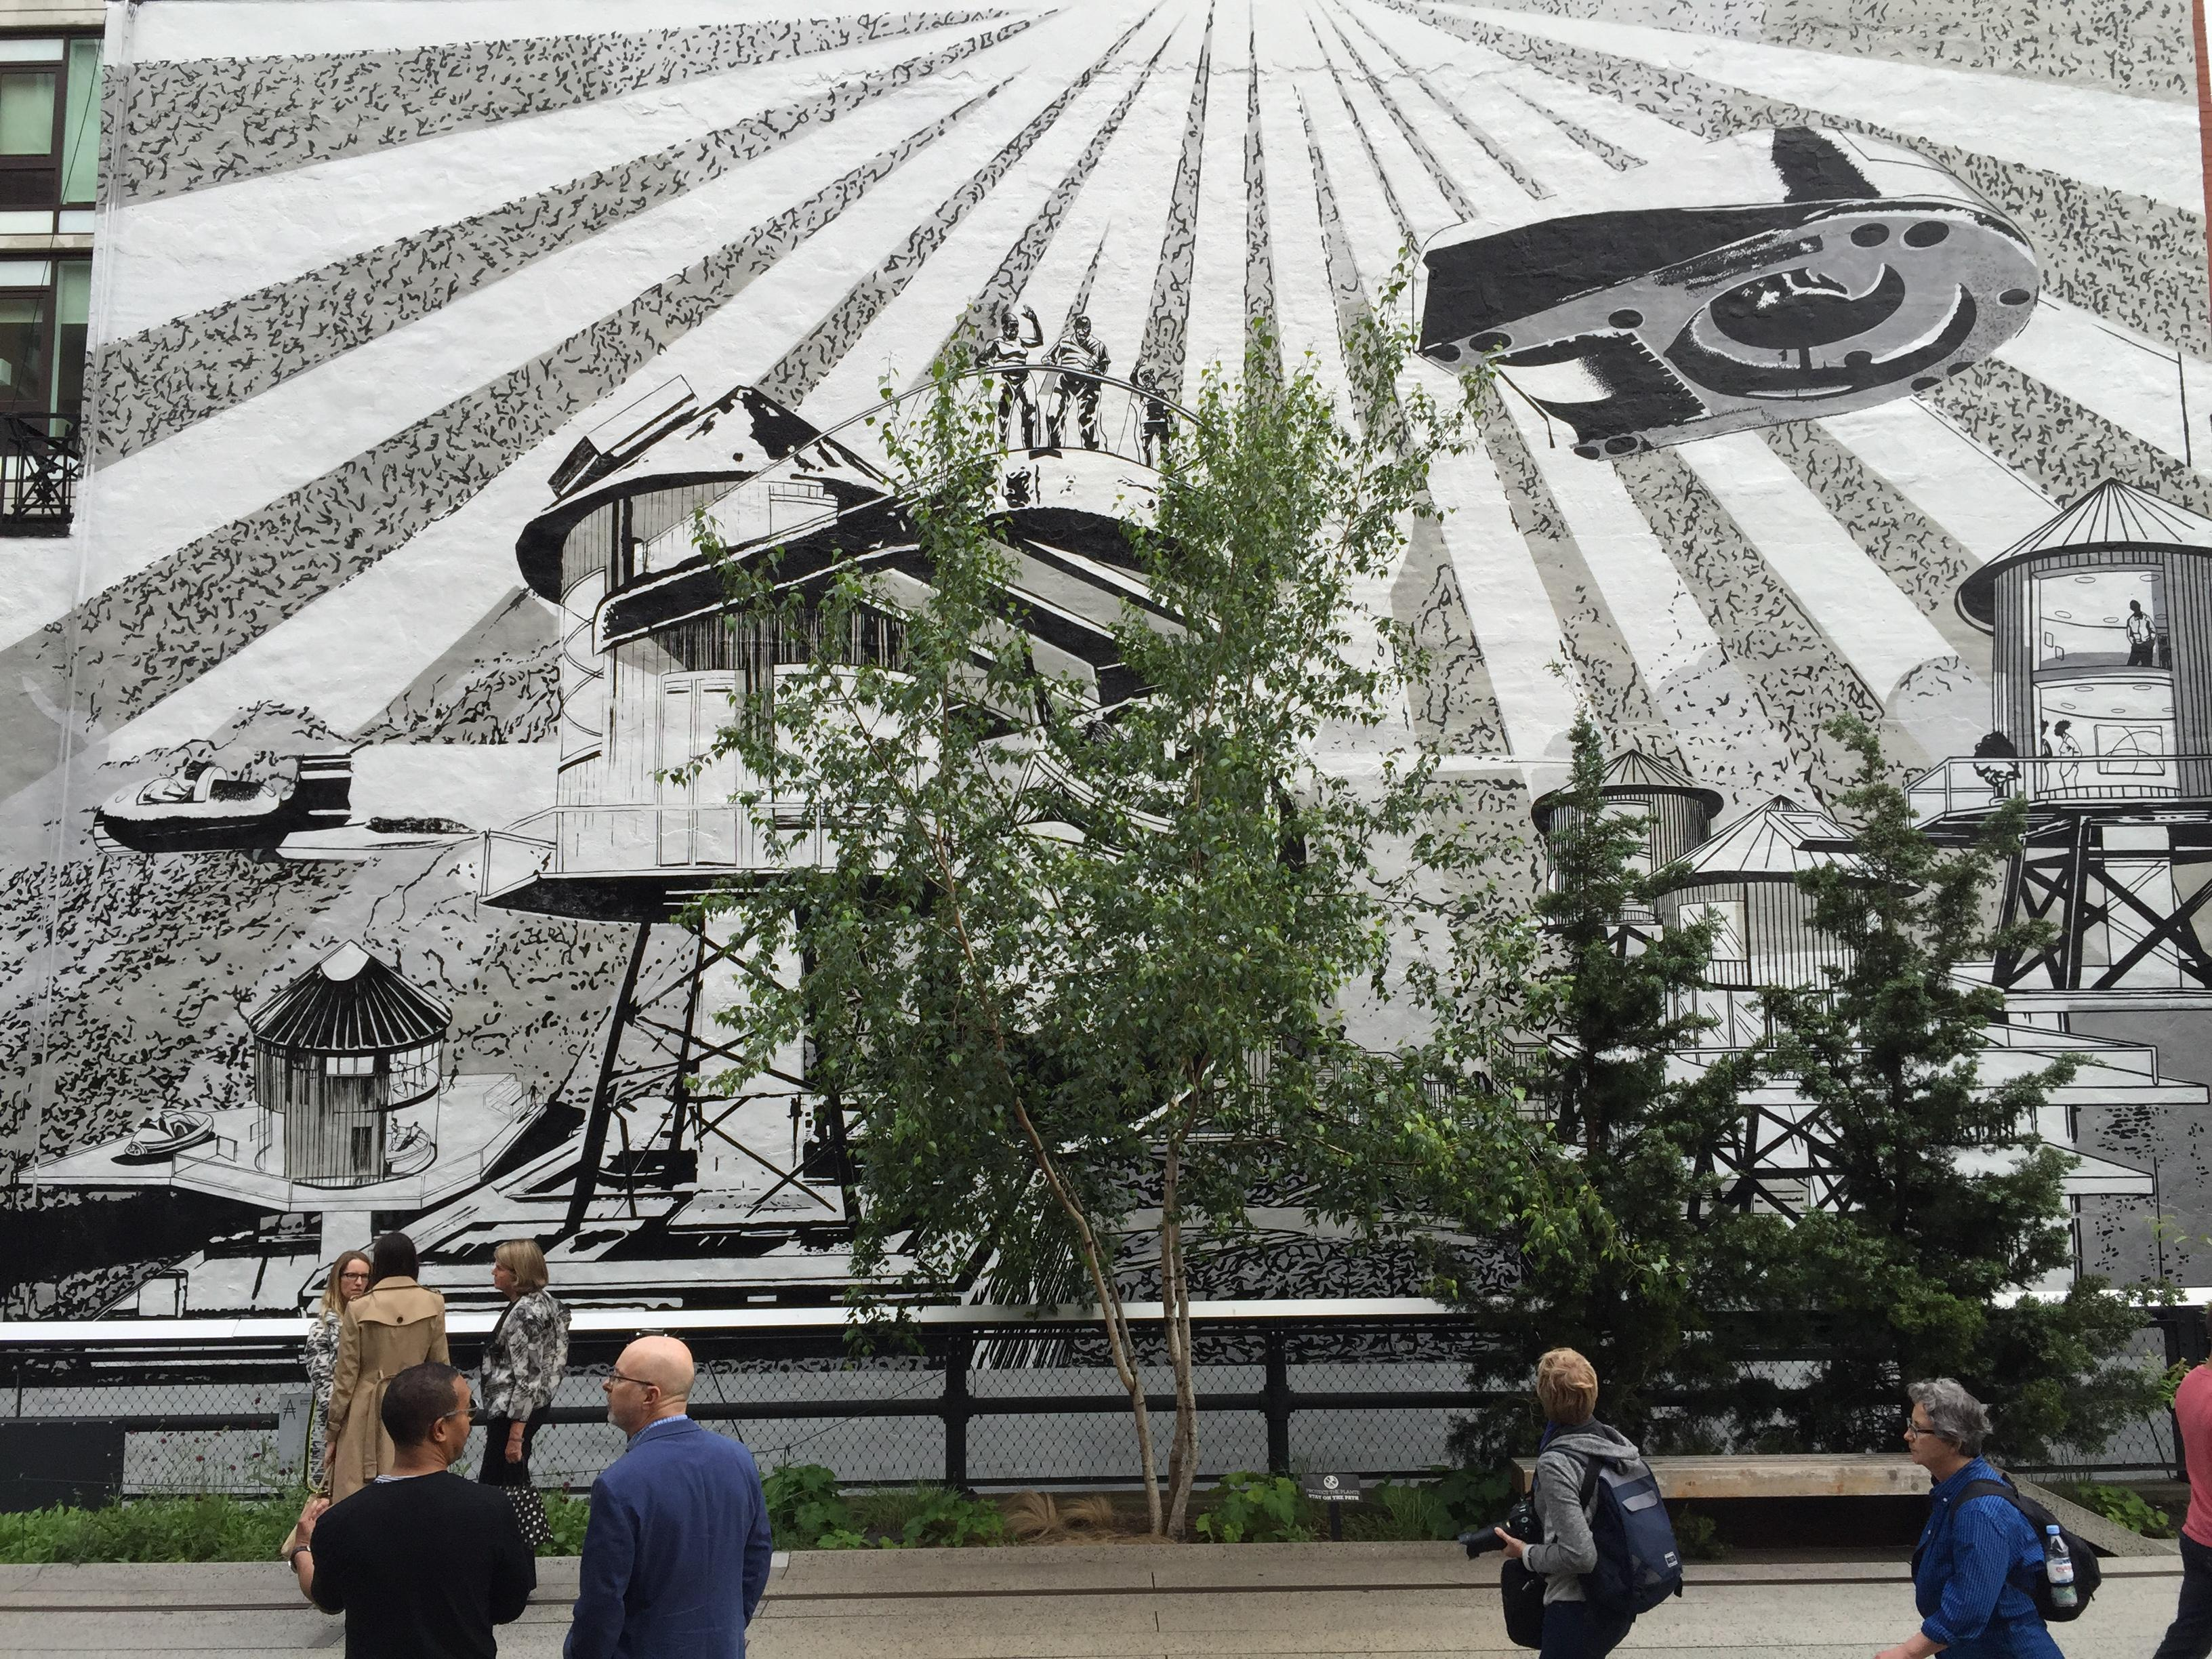 People in a park pass by a large black-and-white mural whose illustrations blend classic urban structures with sci-fi elements.